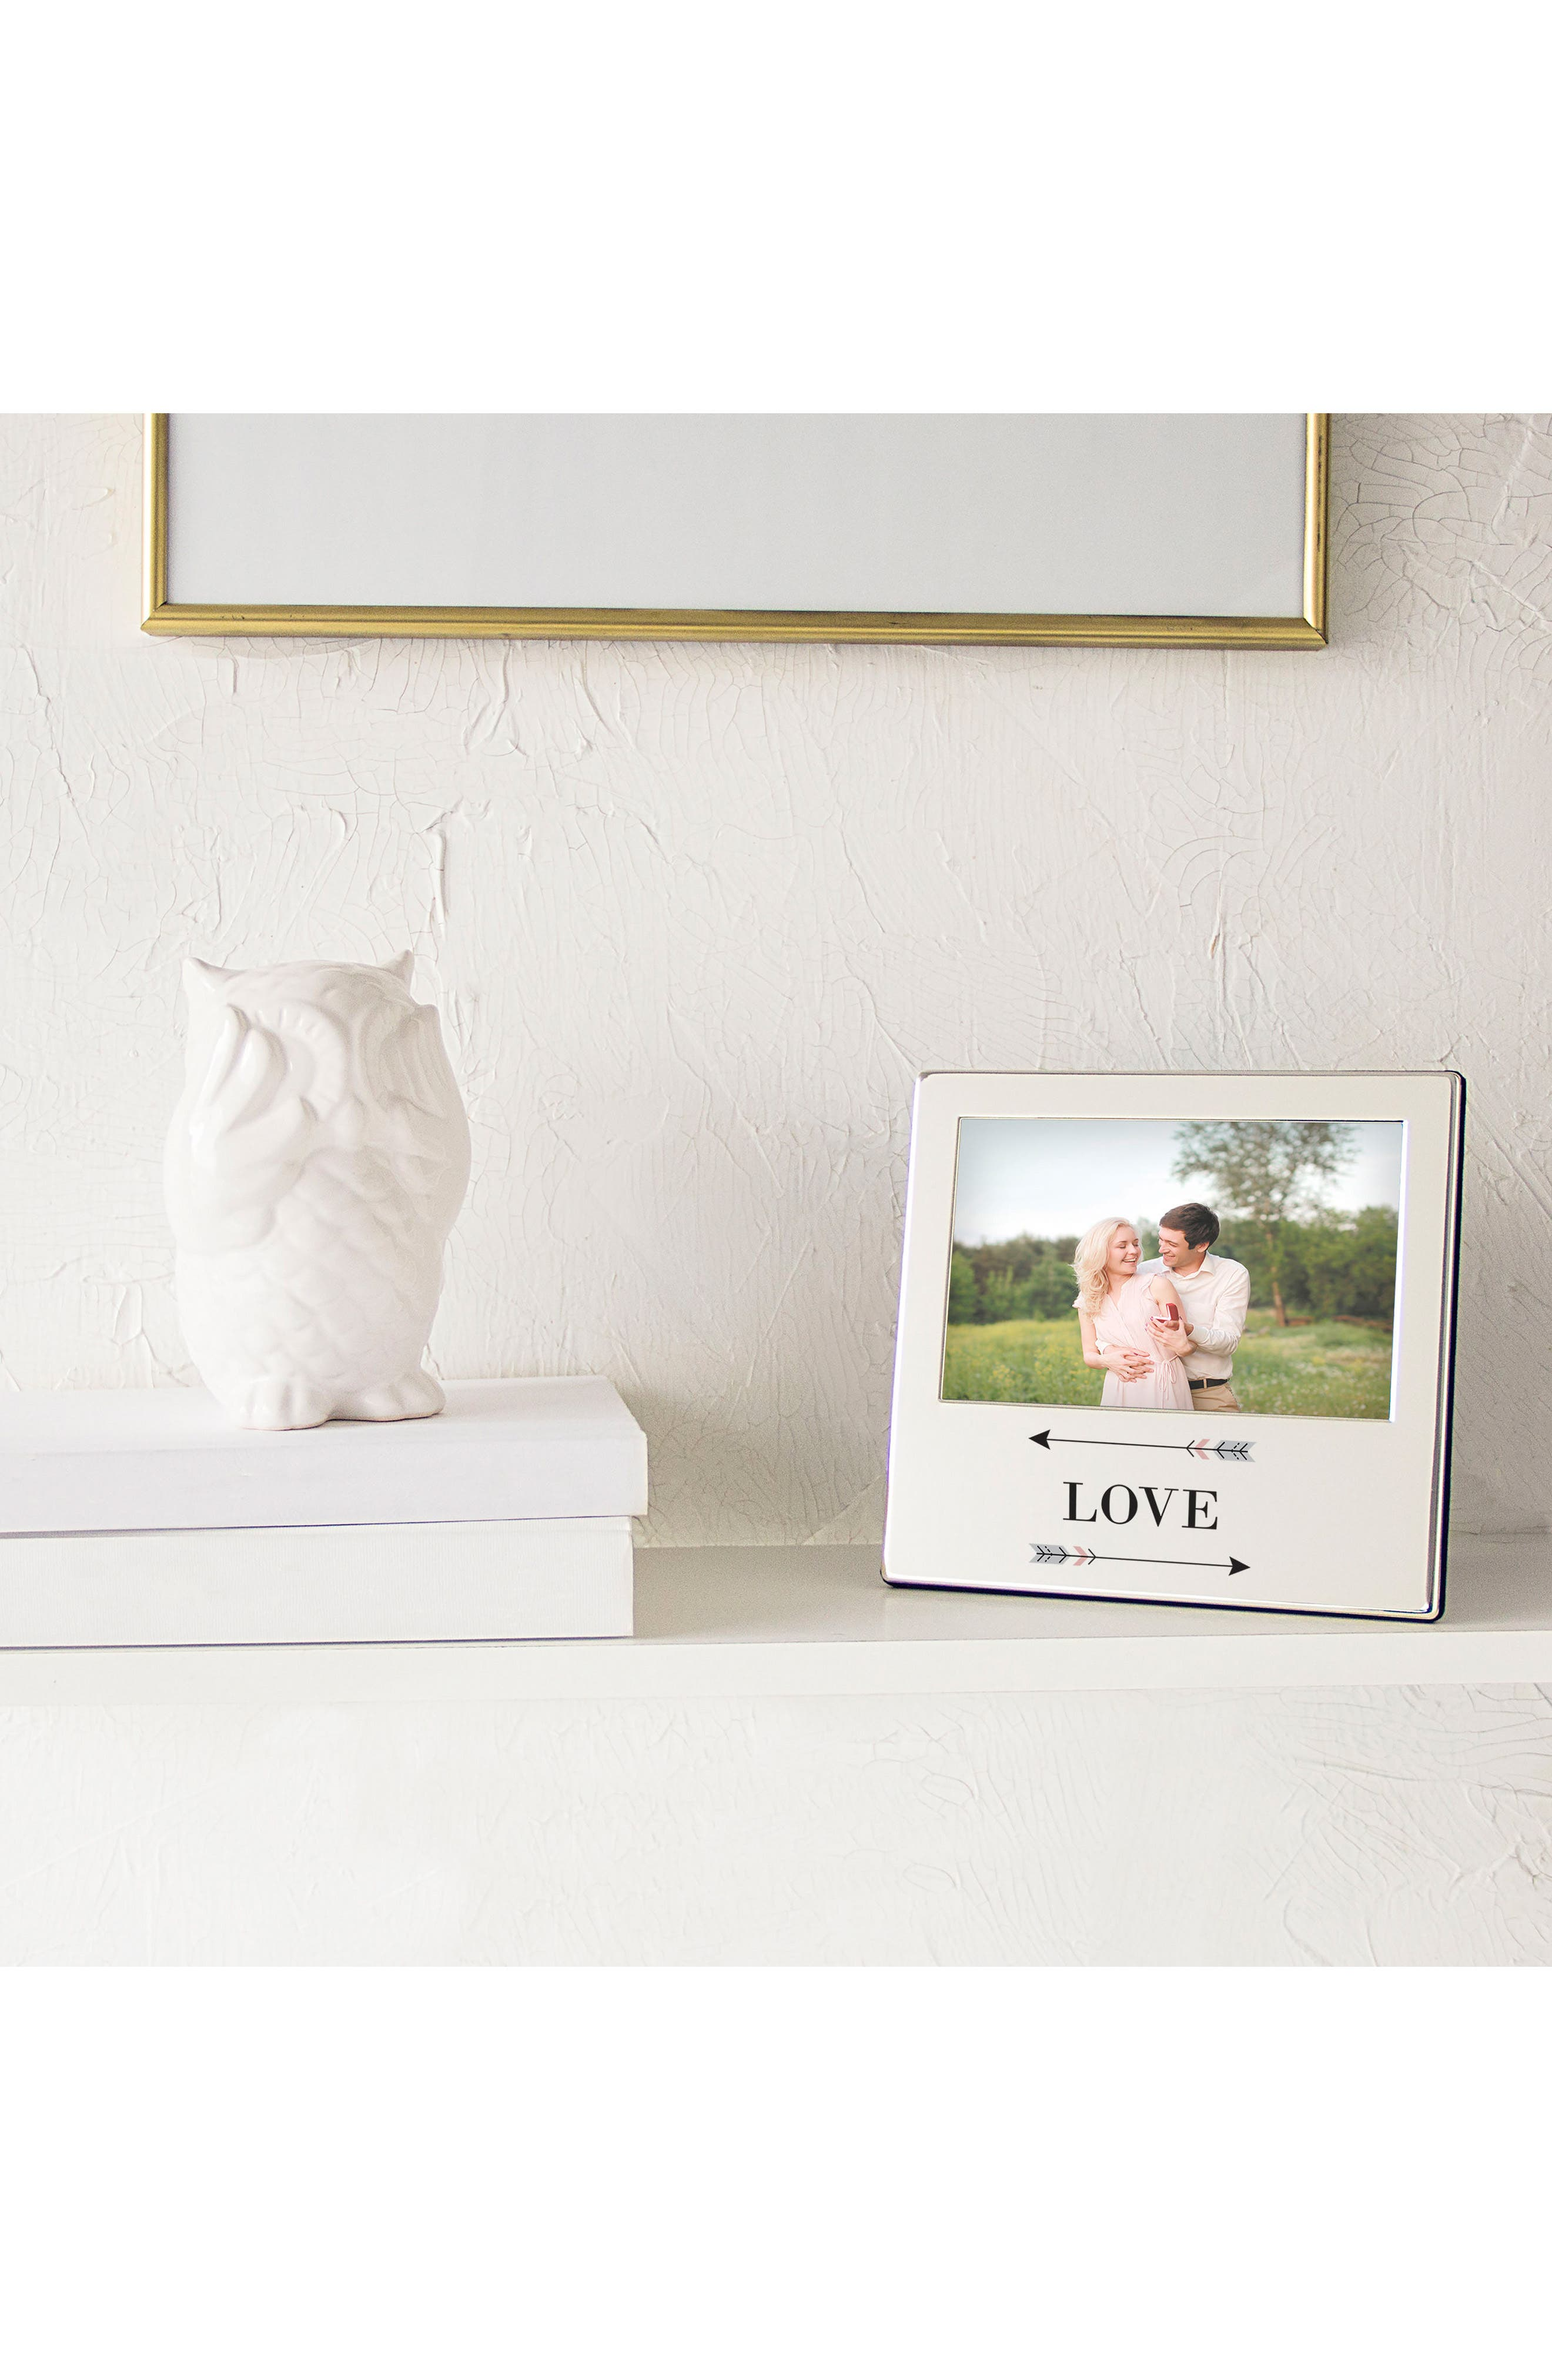 Love Arrows Silver Picture Frame,                             Alternate thumbnail 7, color,                             040